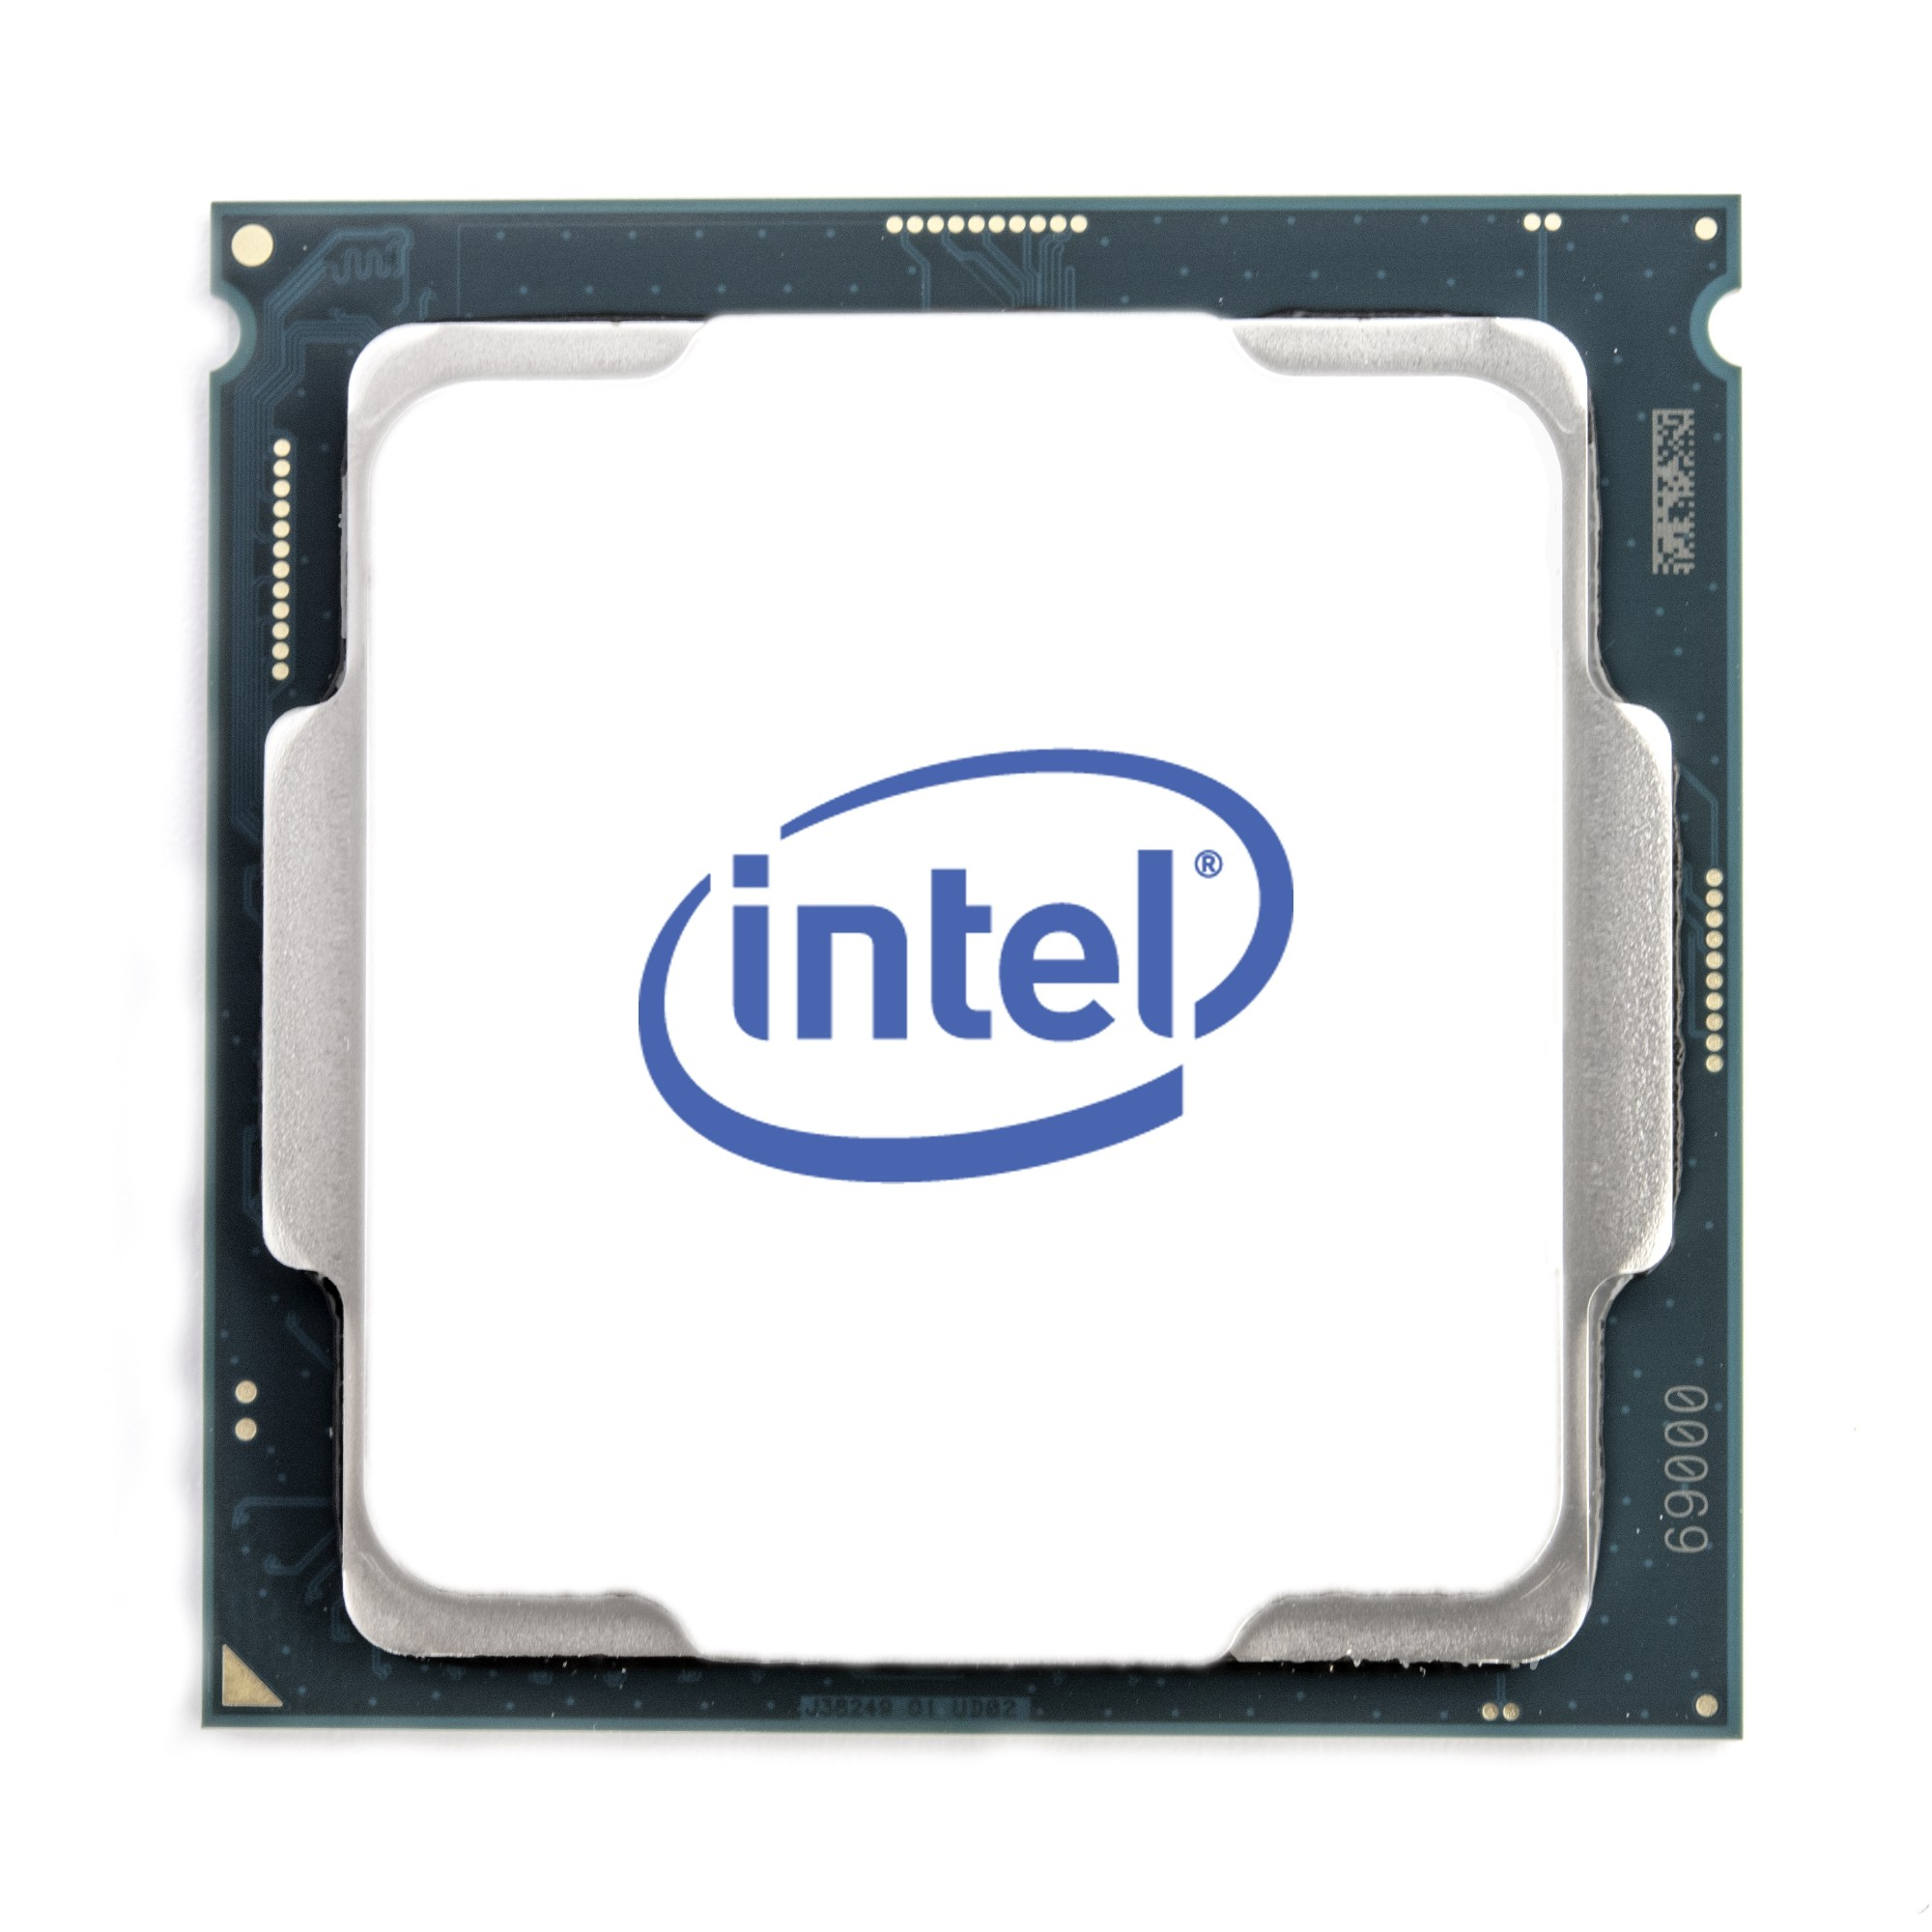 INTEL XEON E-2234 PROCESSOR 3.6 GHZ 8 MB